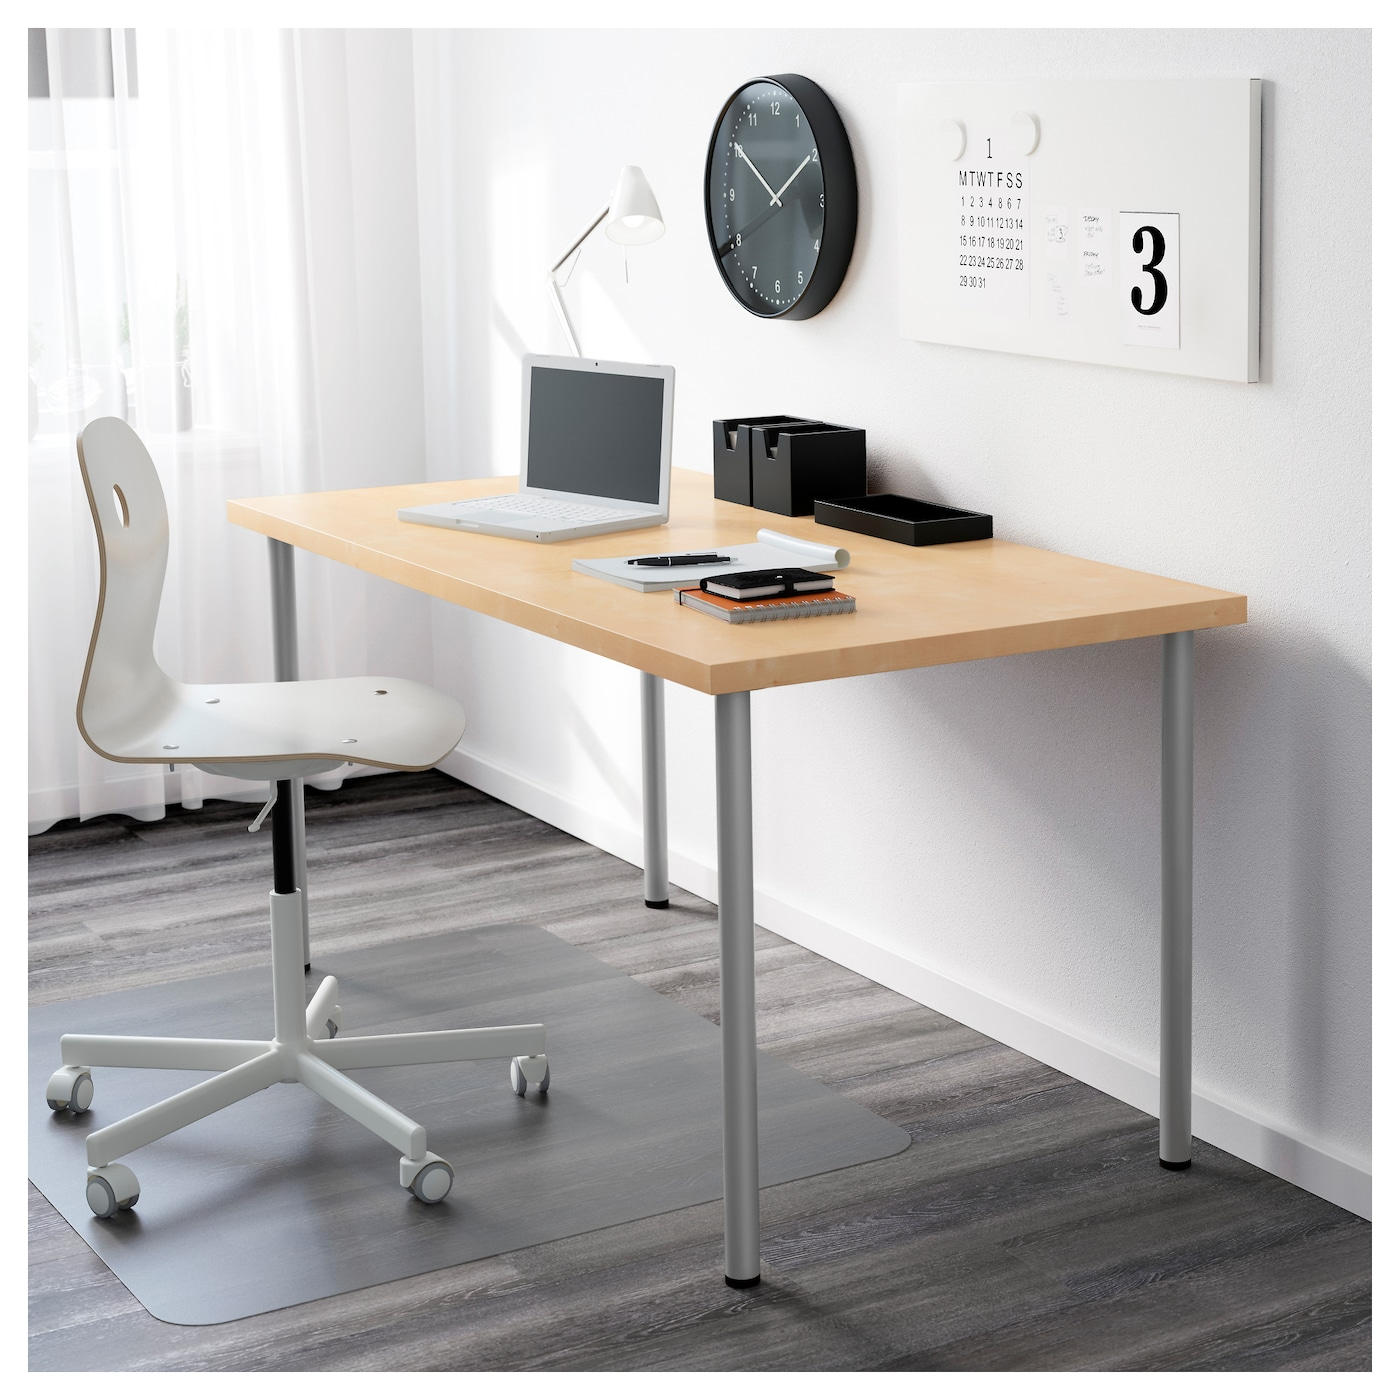 IKEA ADILS leg Adjustable feet make the table stand steady also on uneven floors.